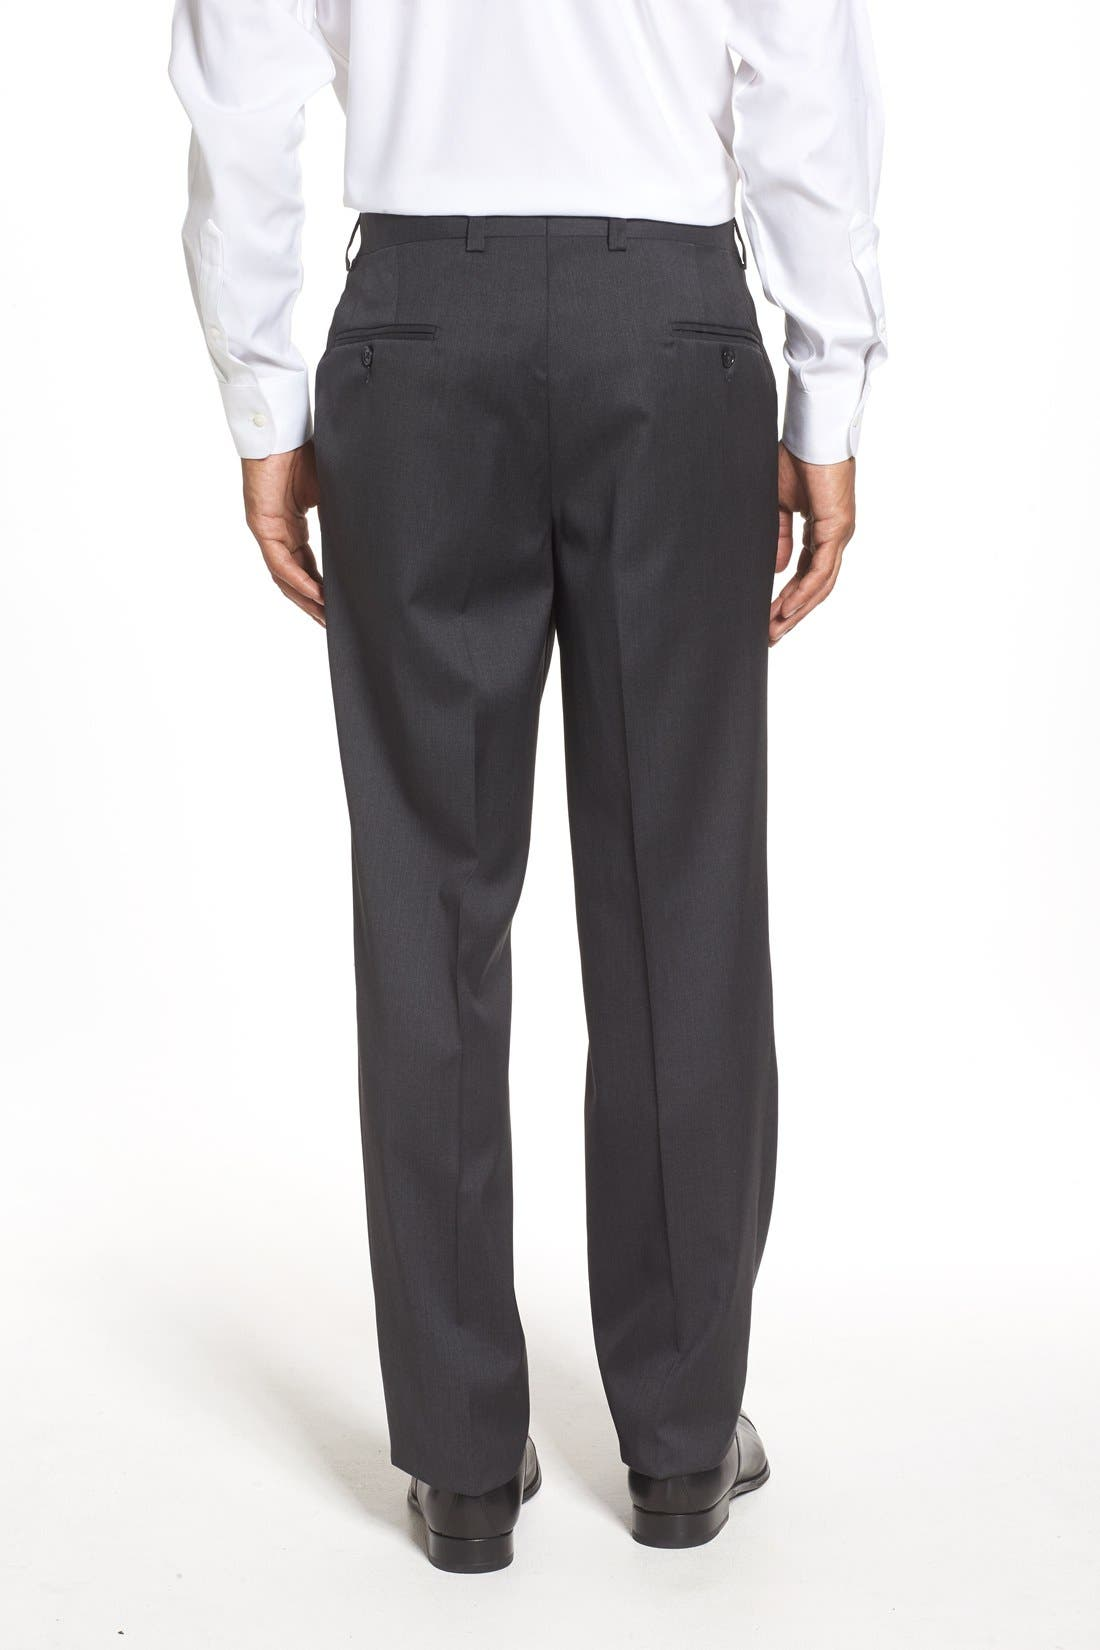 RIVIERA,                             Flat Front Solid Wool Trousers,                             Alternate thumbnail 3, color,                             010